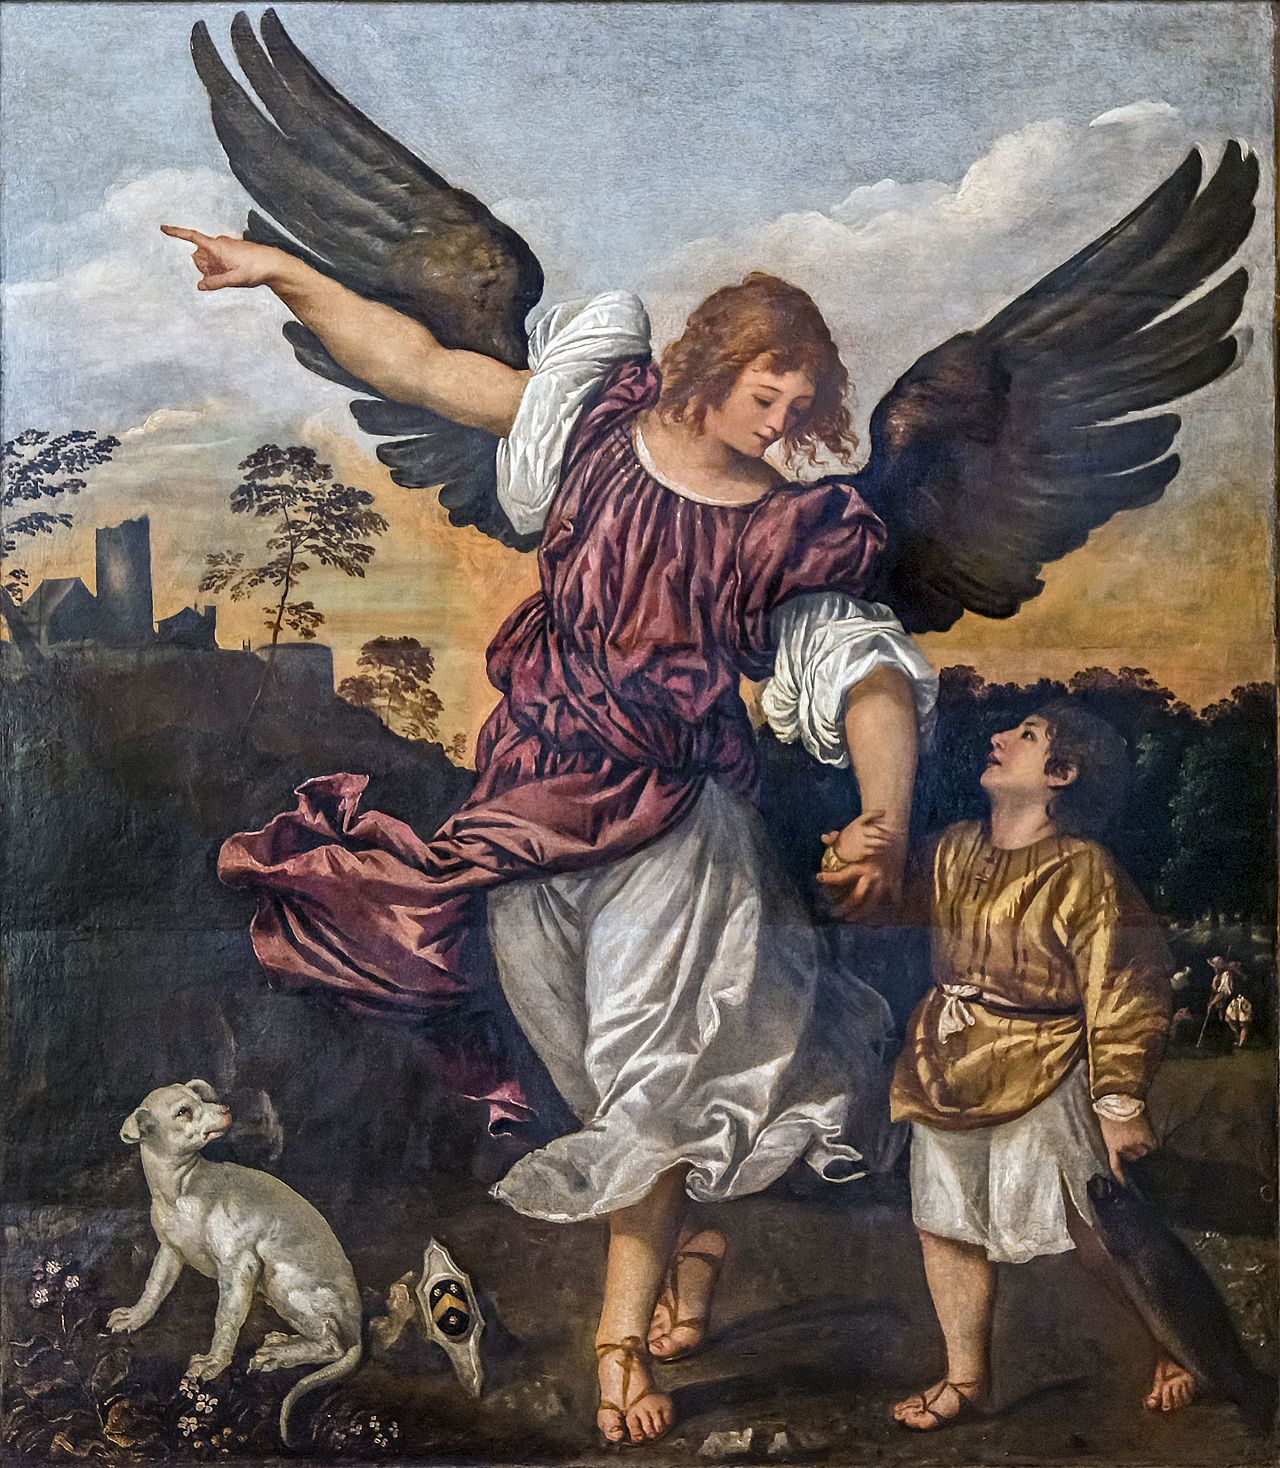 Archangel_Raphael_and_Tobit_by_Titian